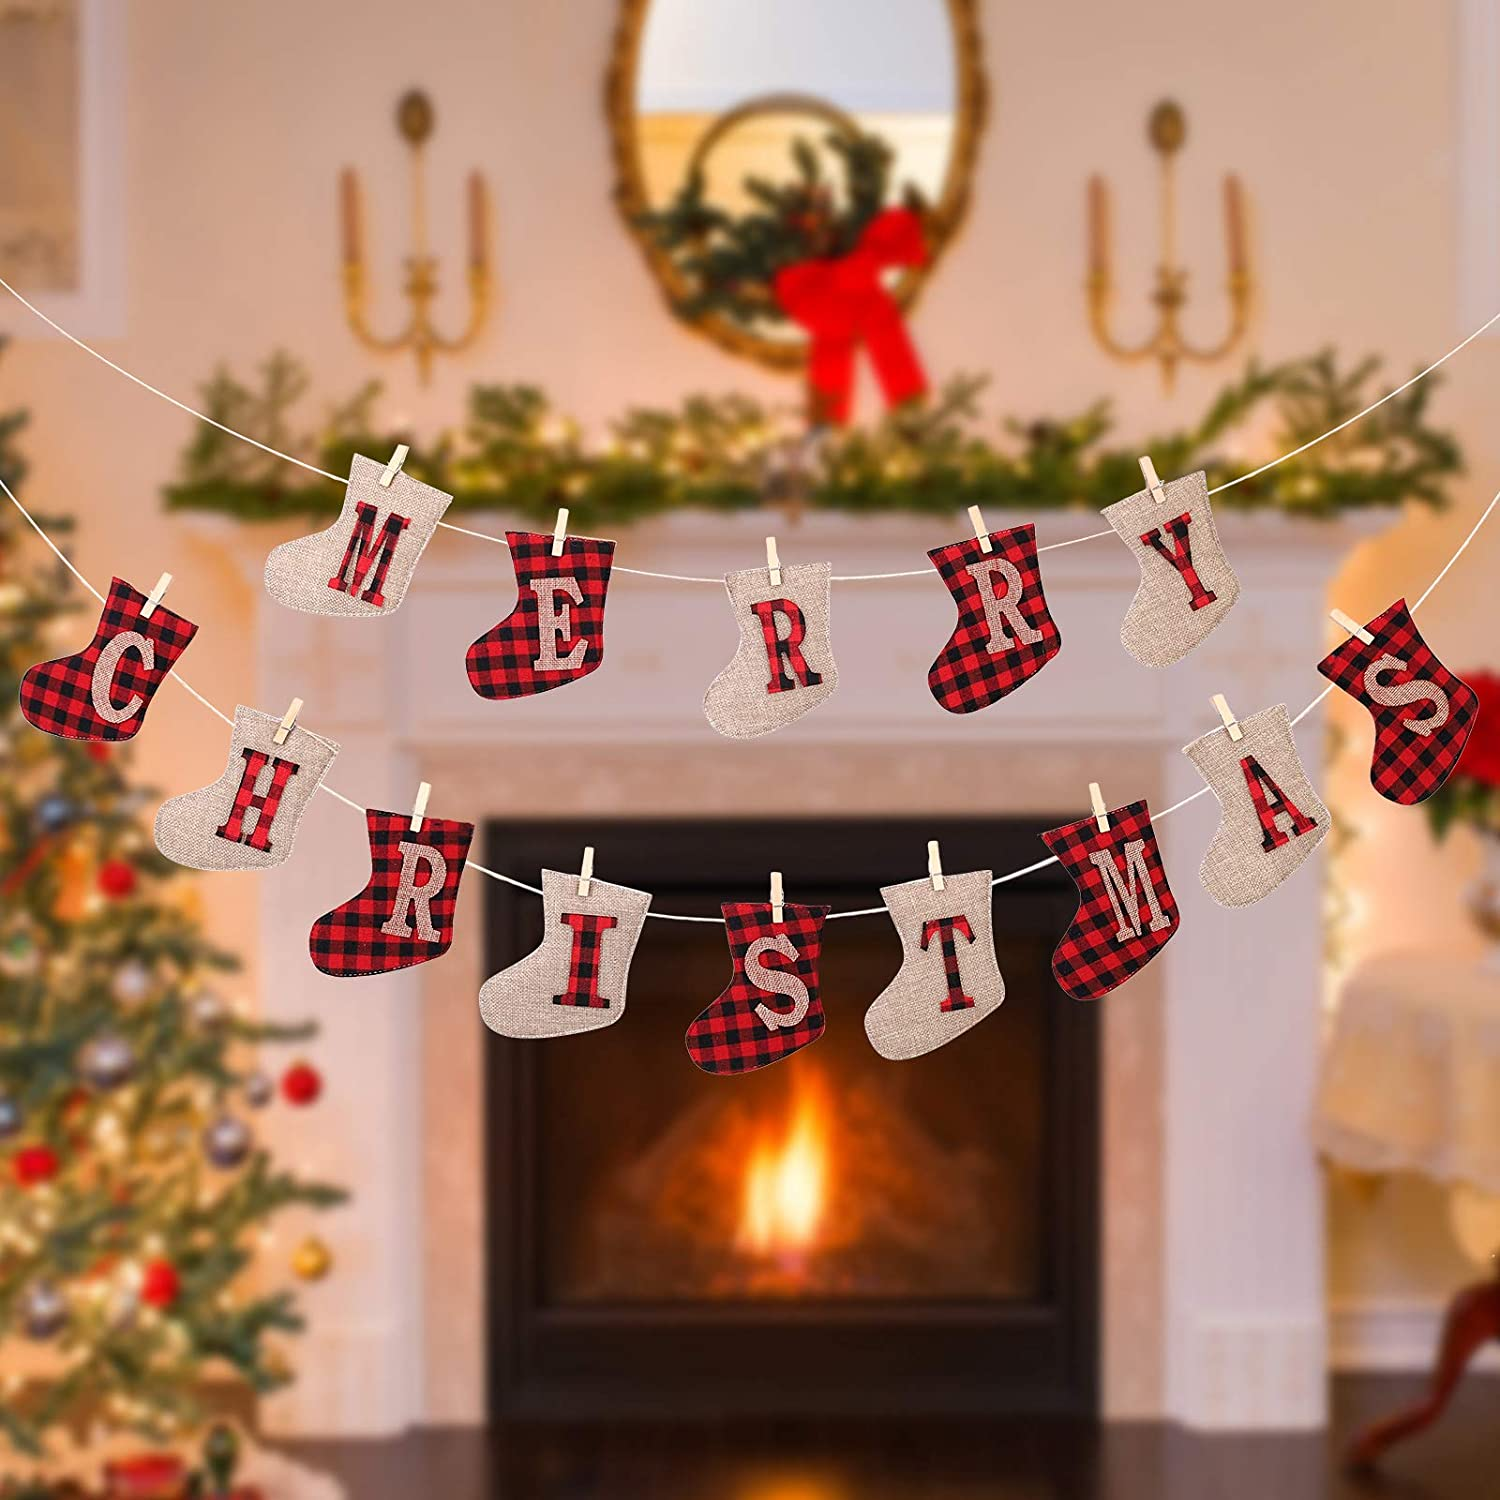 Merry Christmas Banner Decorations,Burlap Garland Christmas Socks Indoor Banner,Xmas Decor Indoor for Fireplace Home Office Party